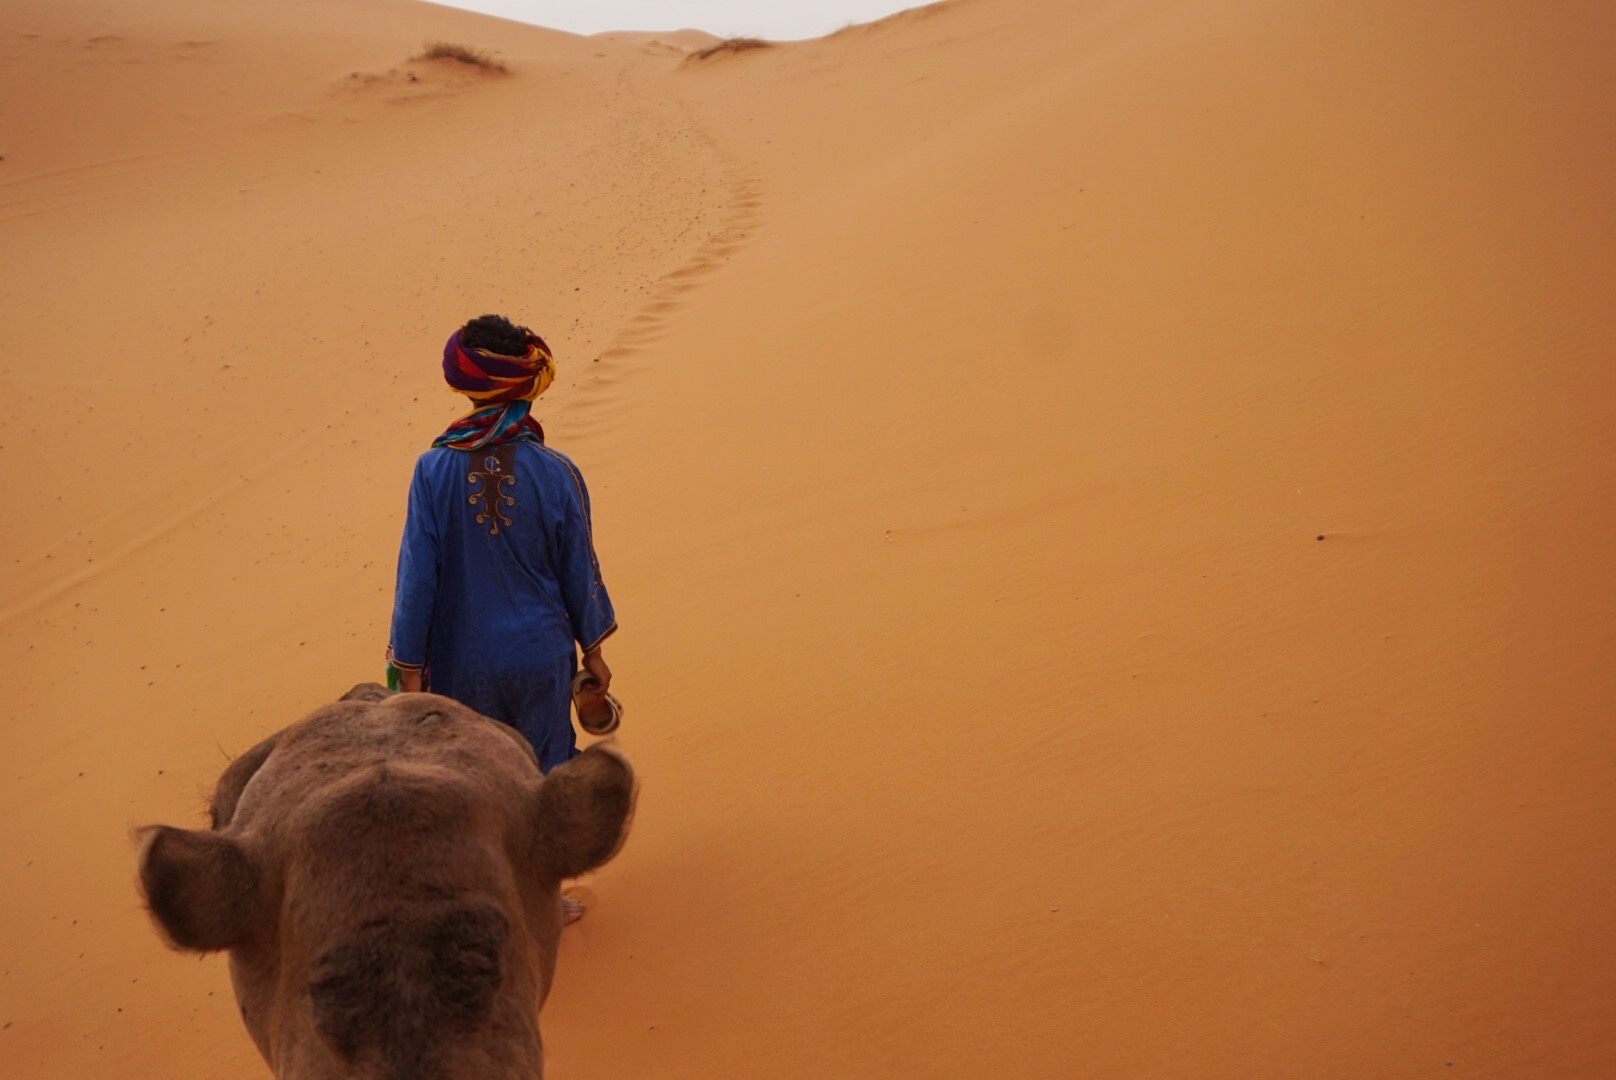 Camel trek into the Sahara Desert